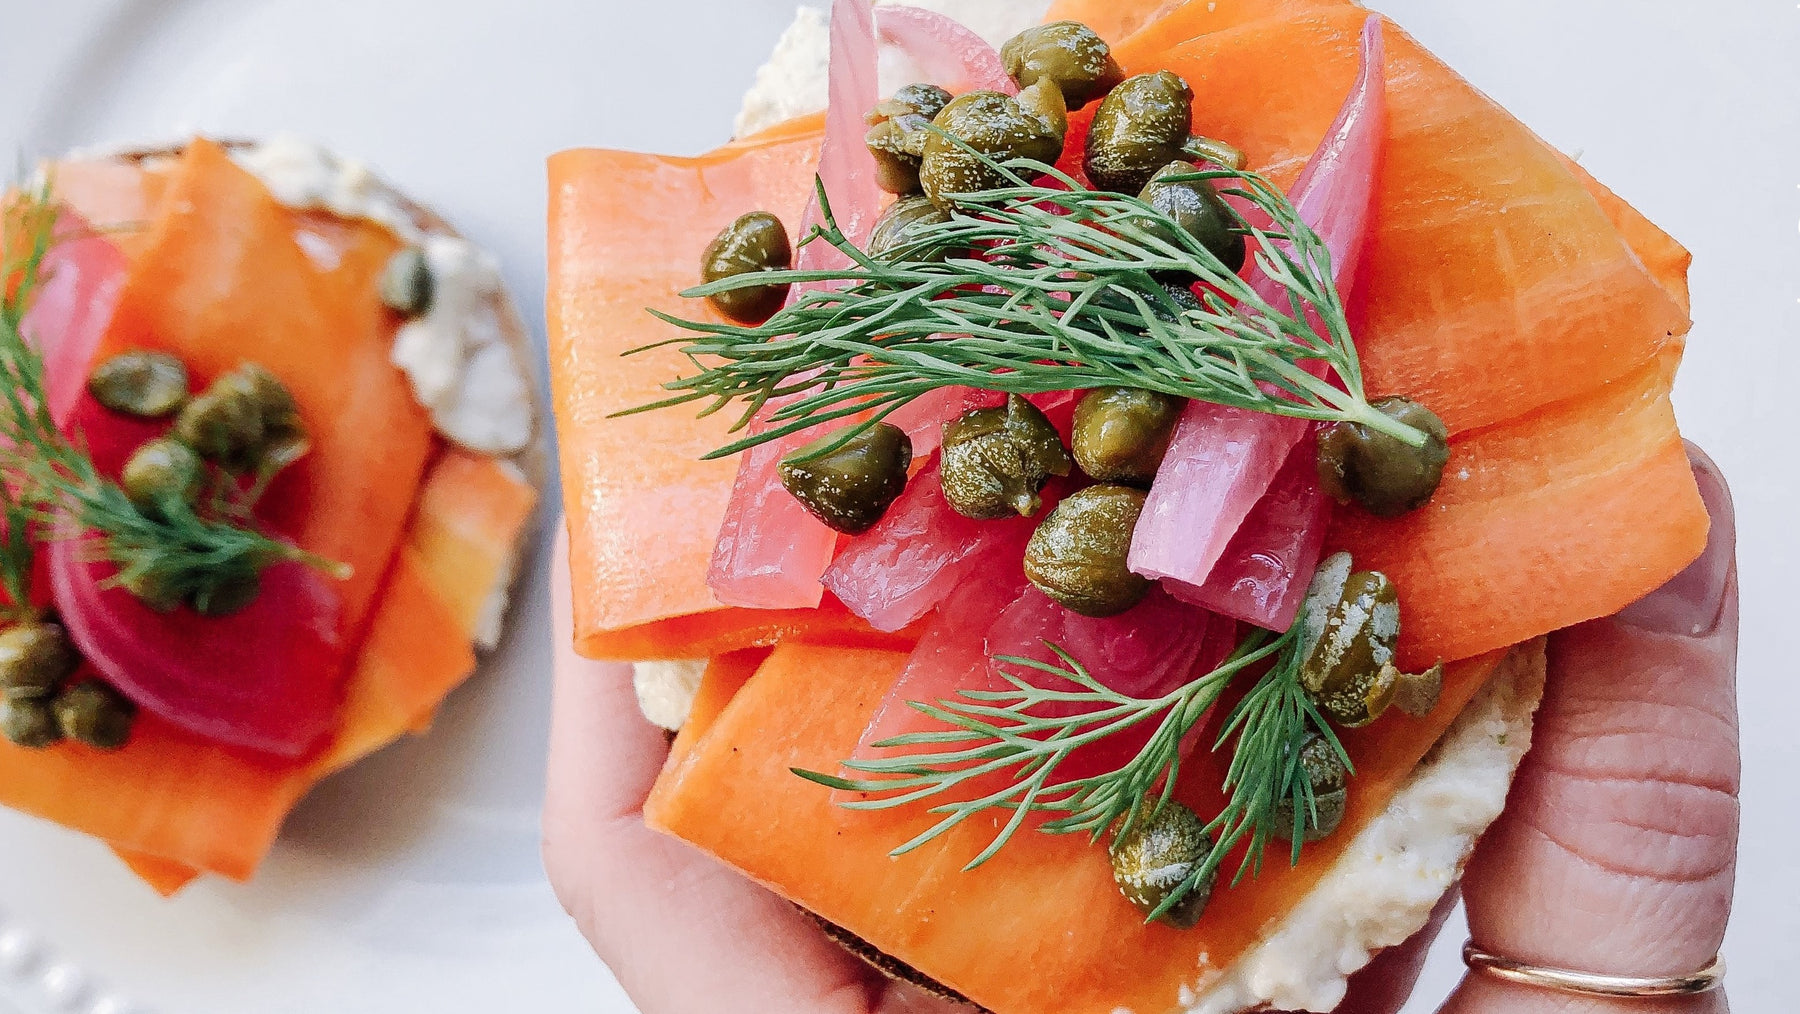 Hand holding Faux Lox Bagel with birghtly coloured smoked carrot, capers, pickled red onion, and fresh dill